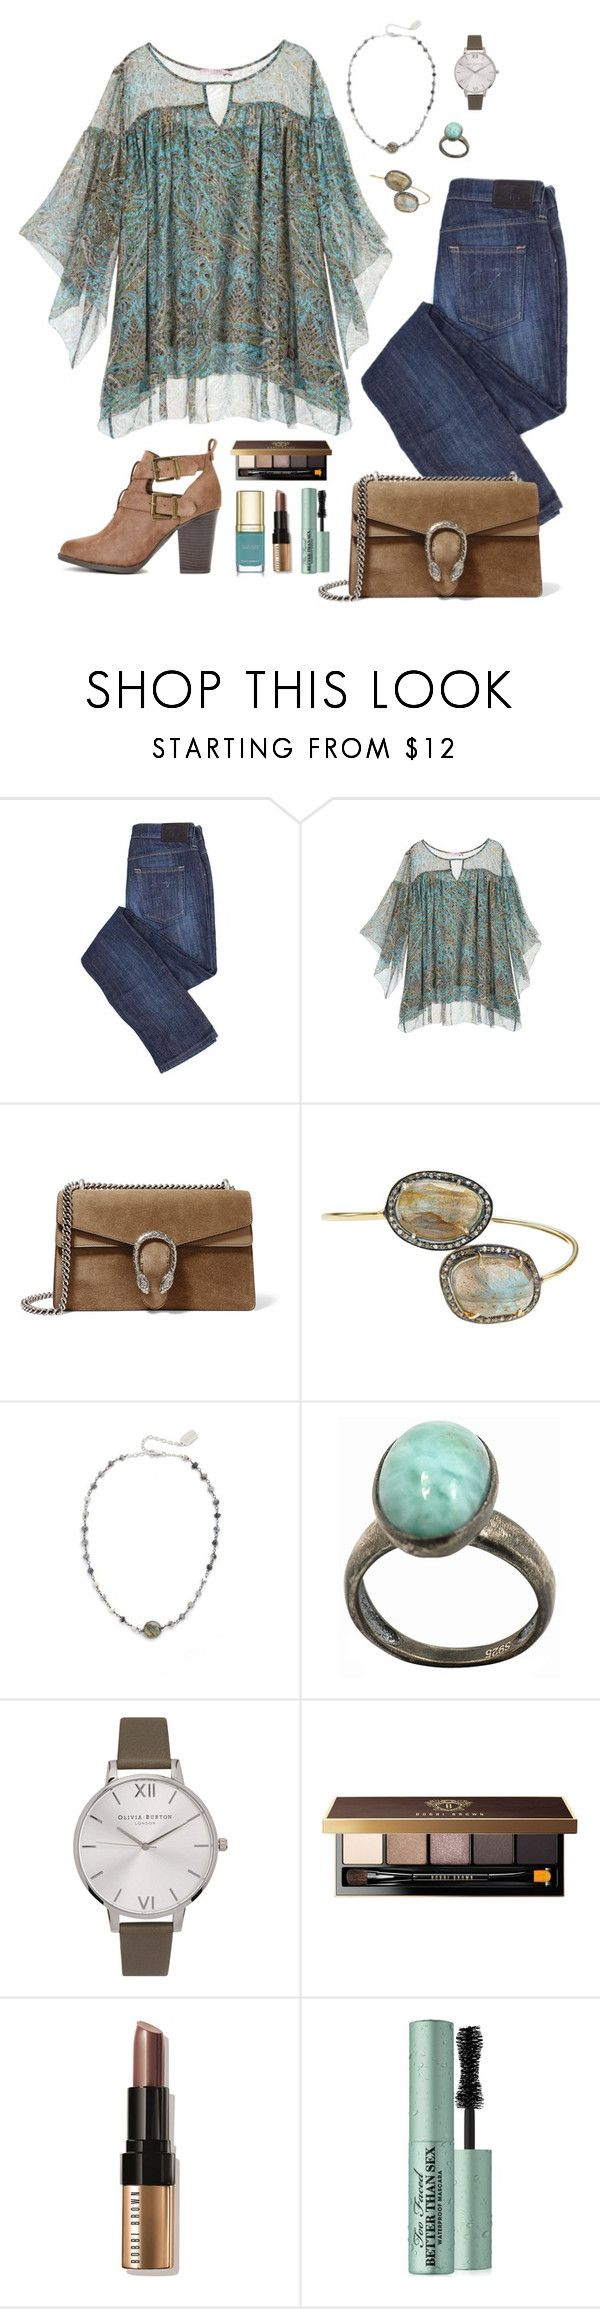 """Ashlyn"" by michela68 ❤ liked on Polyvore featuring Calypso St. Barth, Gucci, ela rae, De Buman, Olivia Burton, Bobbi Brown Cosmetics, Too Faced Cosmetics and Dolce&Gabbana"